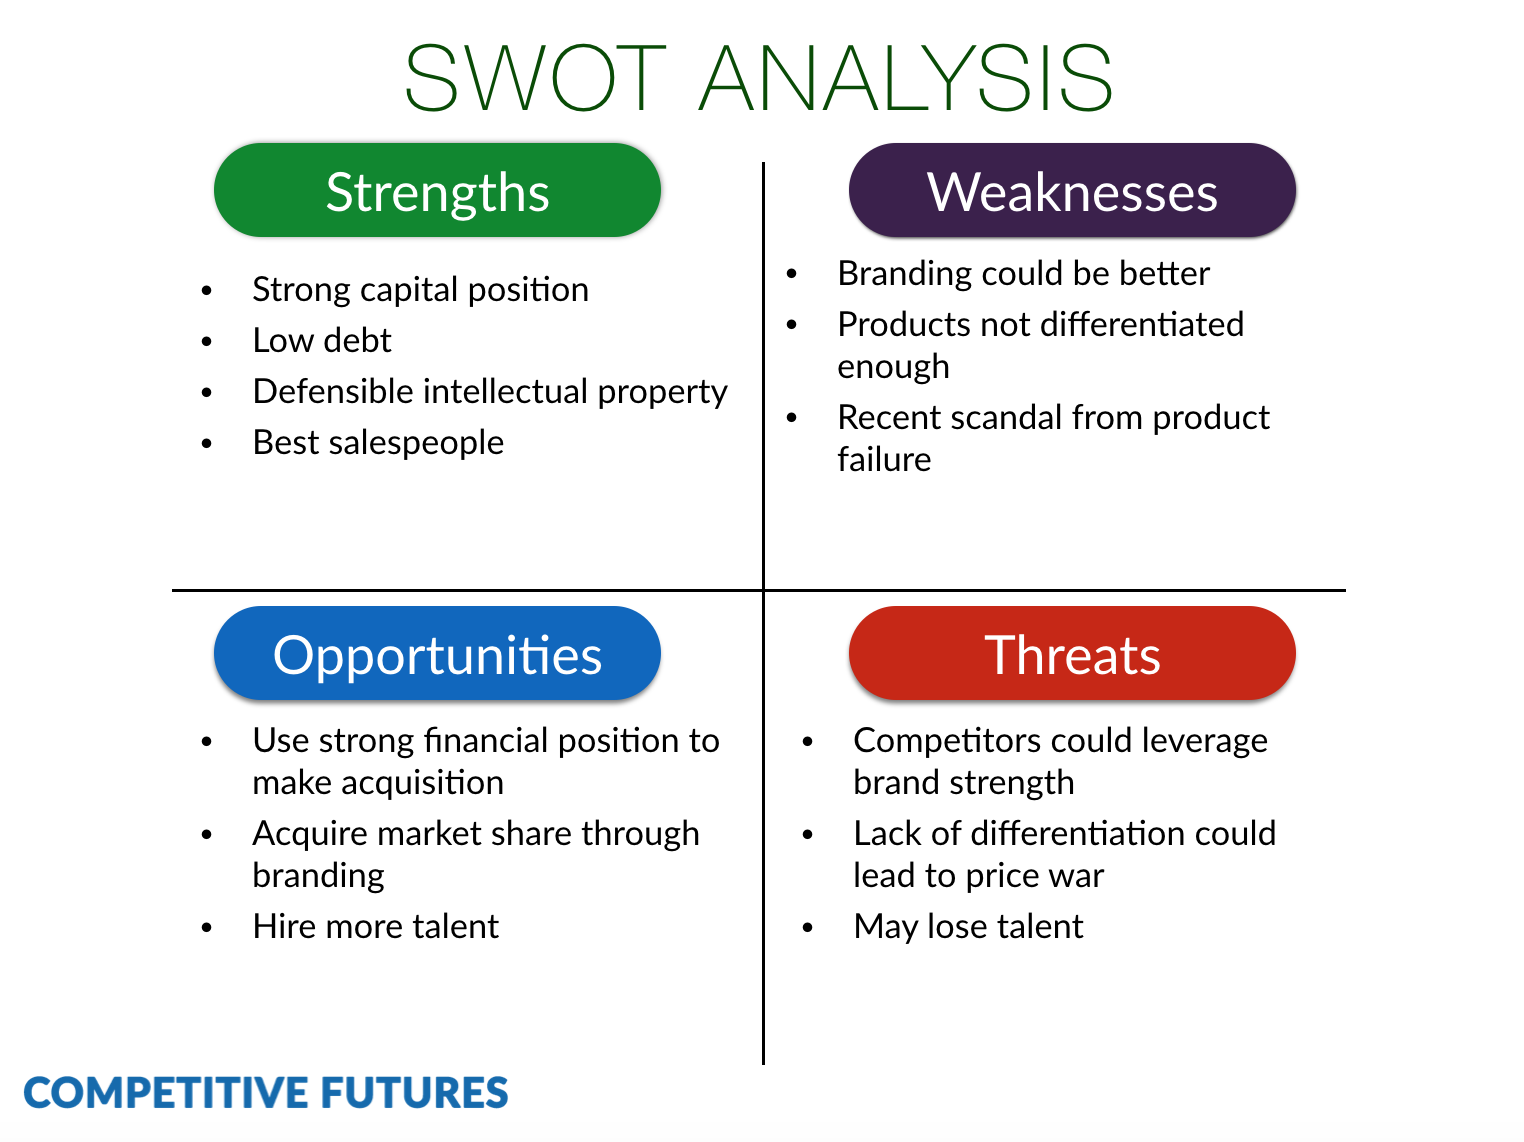 How To Make Swot Analysis More Powerful At Competitive Futures